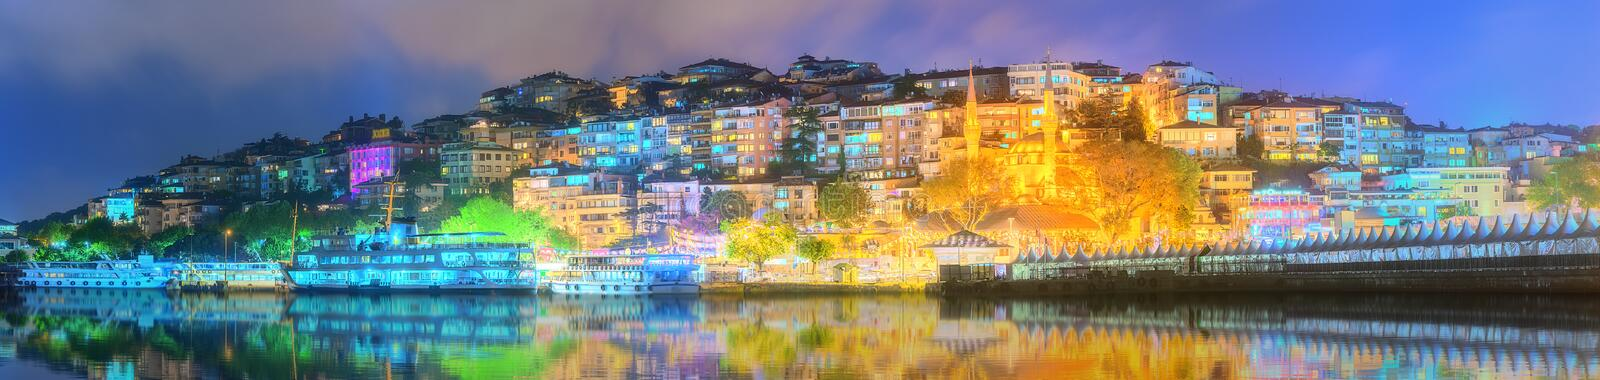 Panorama of Istanbul and Bosporus at night. Turkey royalty free stock images